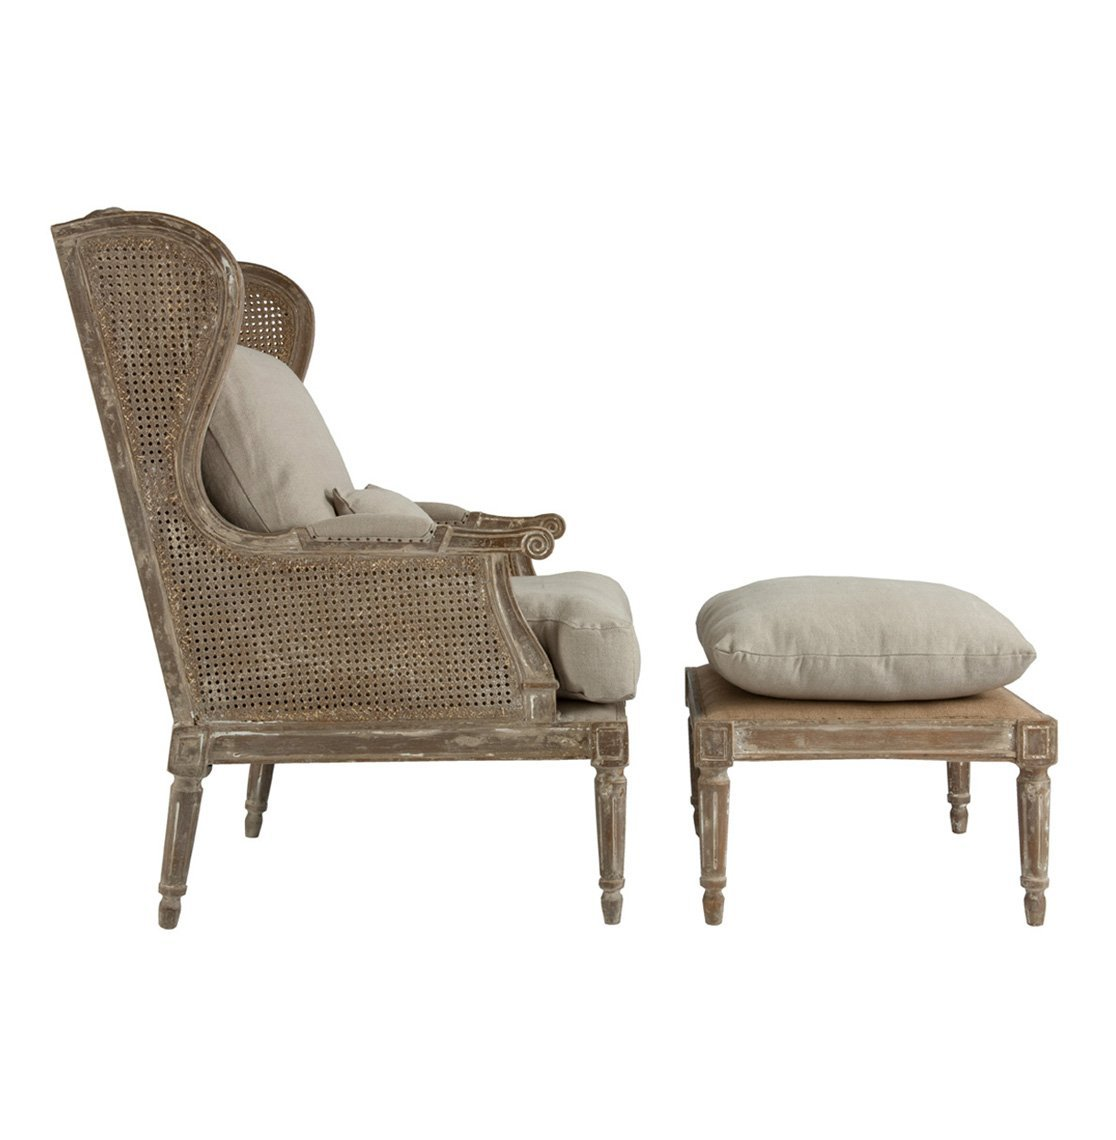 Awesome Amazon.com: Stephen Hemp French Country Wing Back Chair With Ottoman:  Kitchen U0026 Dining